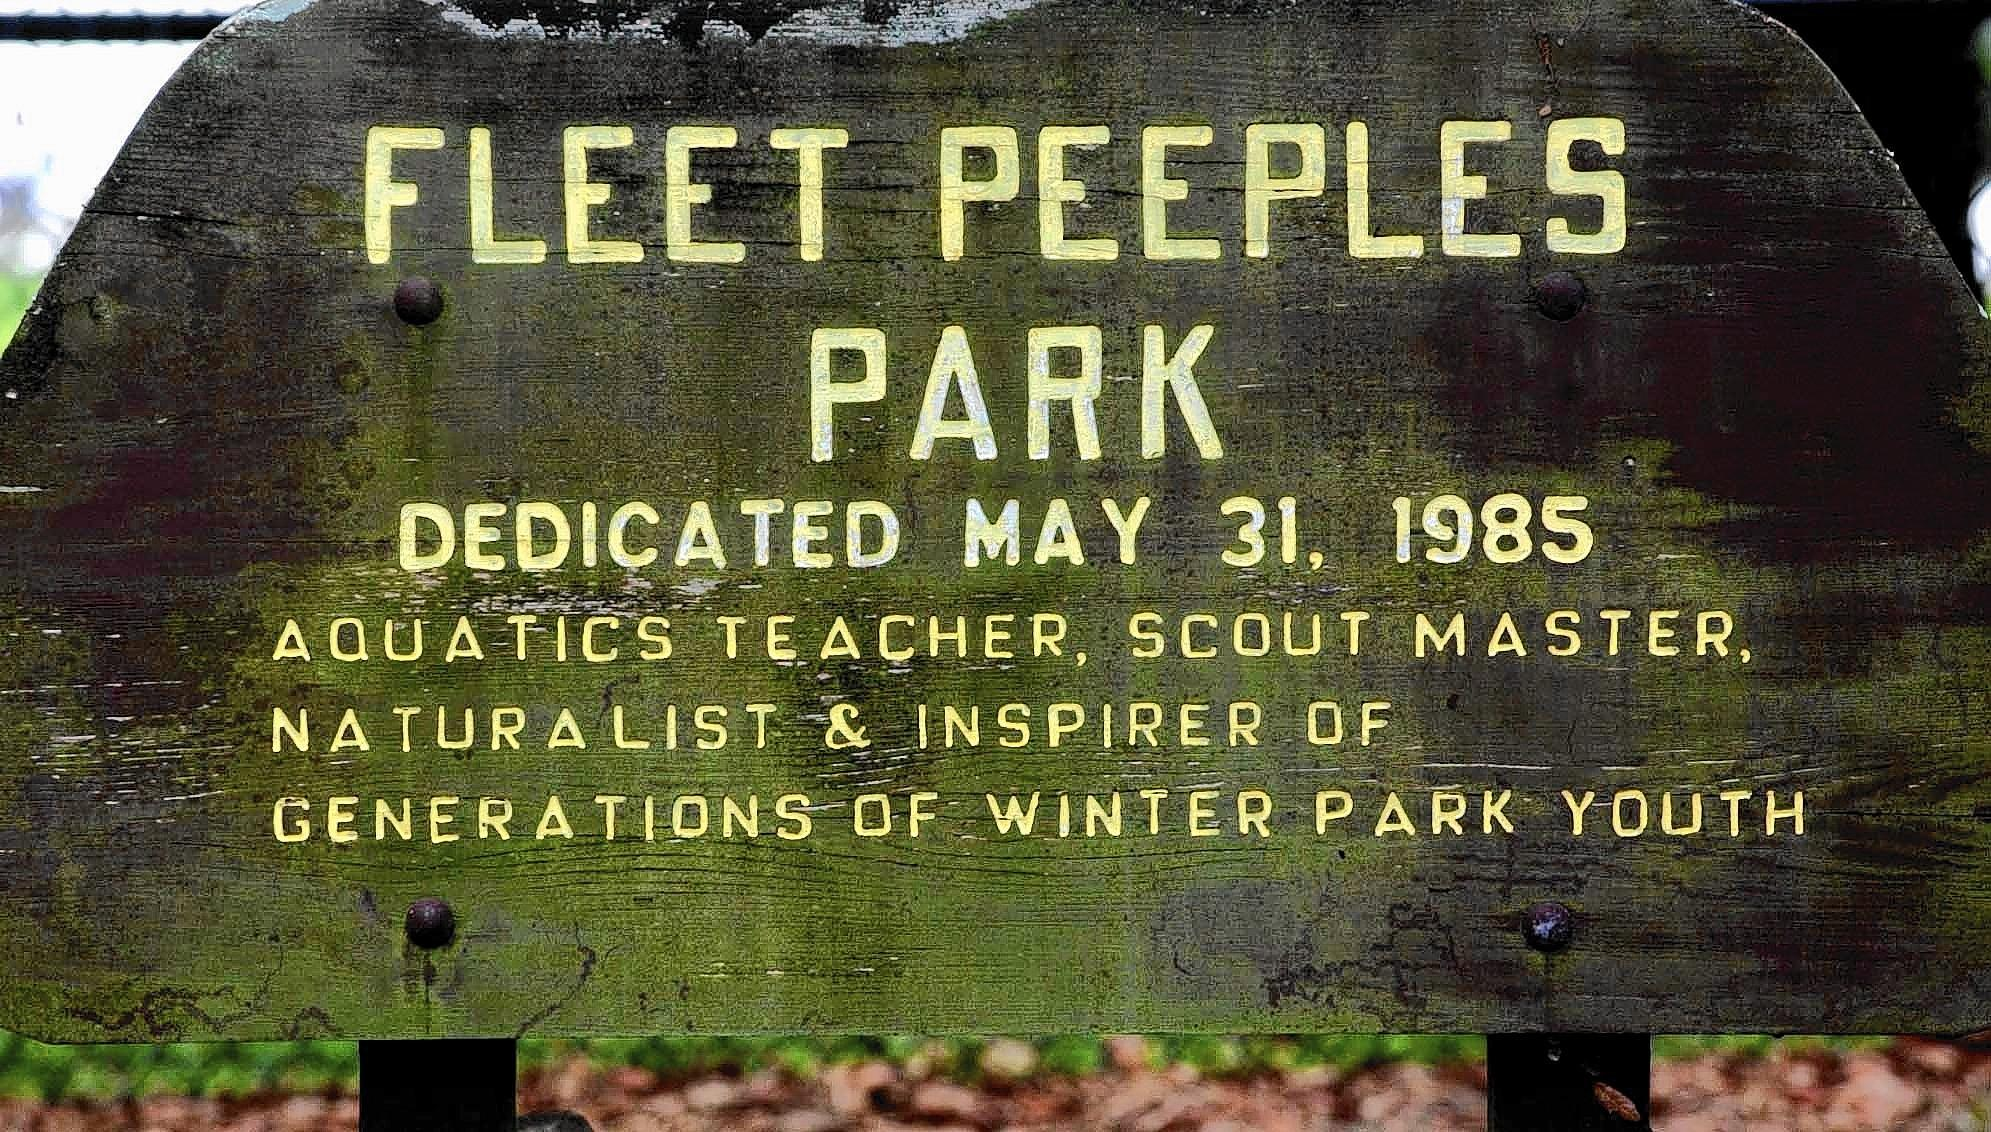 The sign at Fleet Peeples Park in Winter Park.